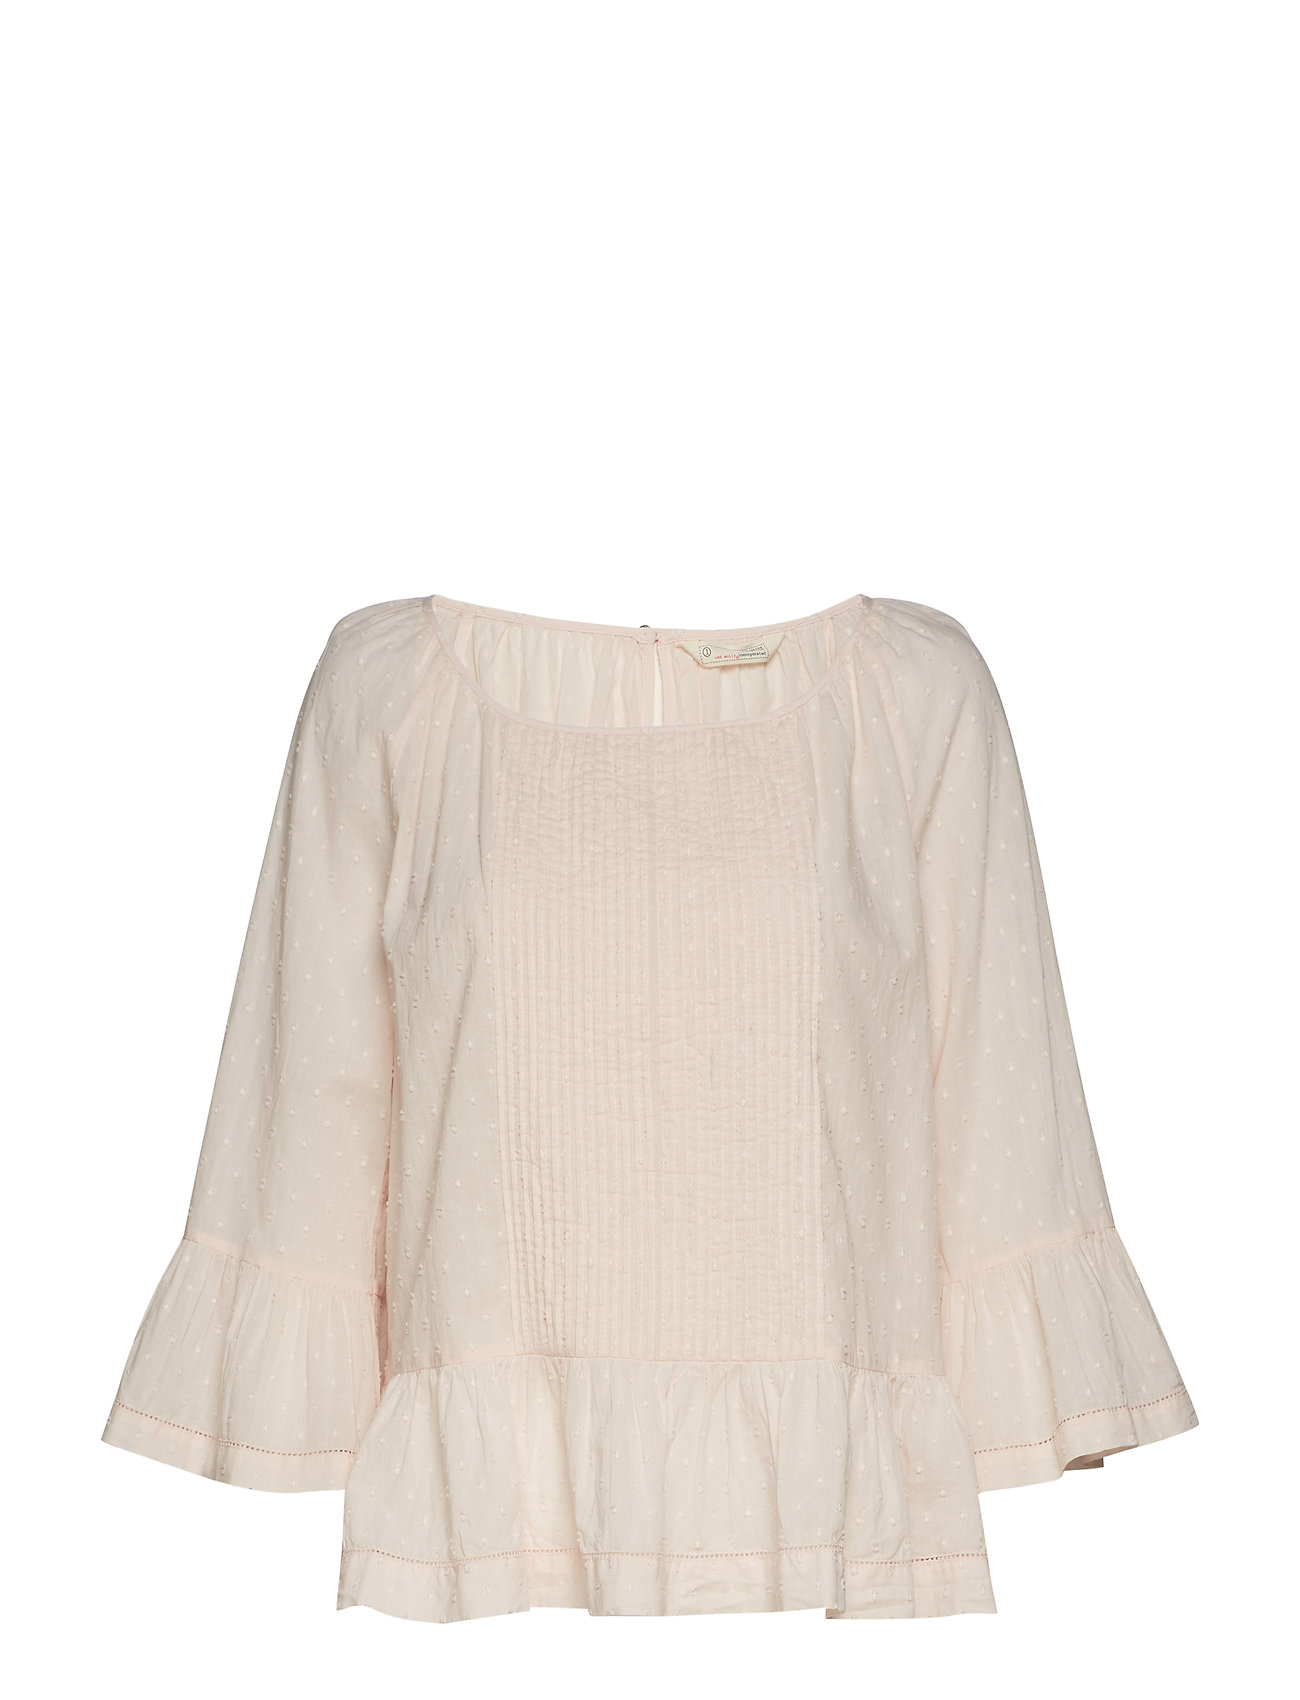 ODD MOLLY wavelenghts blouse - SOFT ROSE